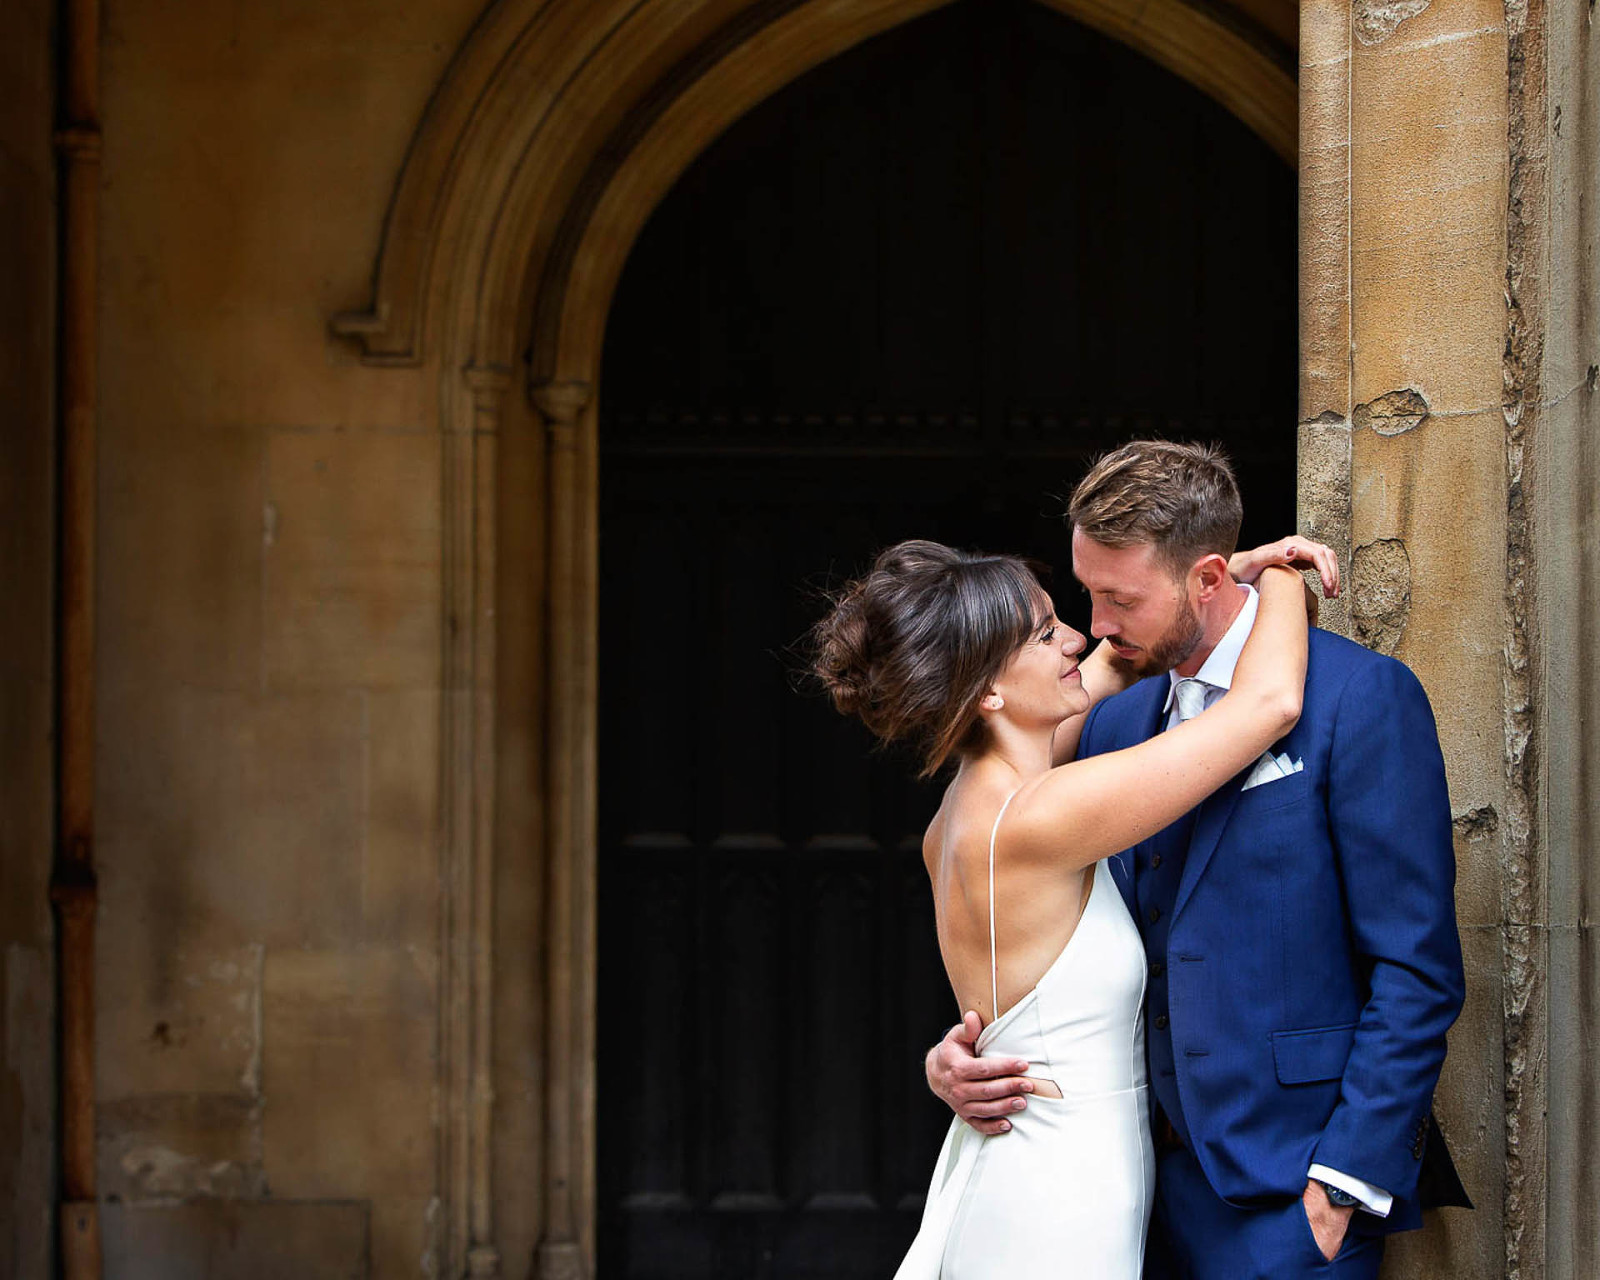 A pair of newlyweds pose for wedding portraits after their Chelsea Town Hall wedding.